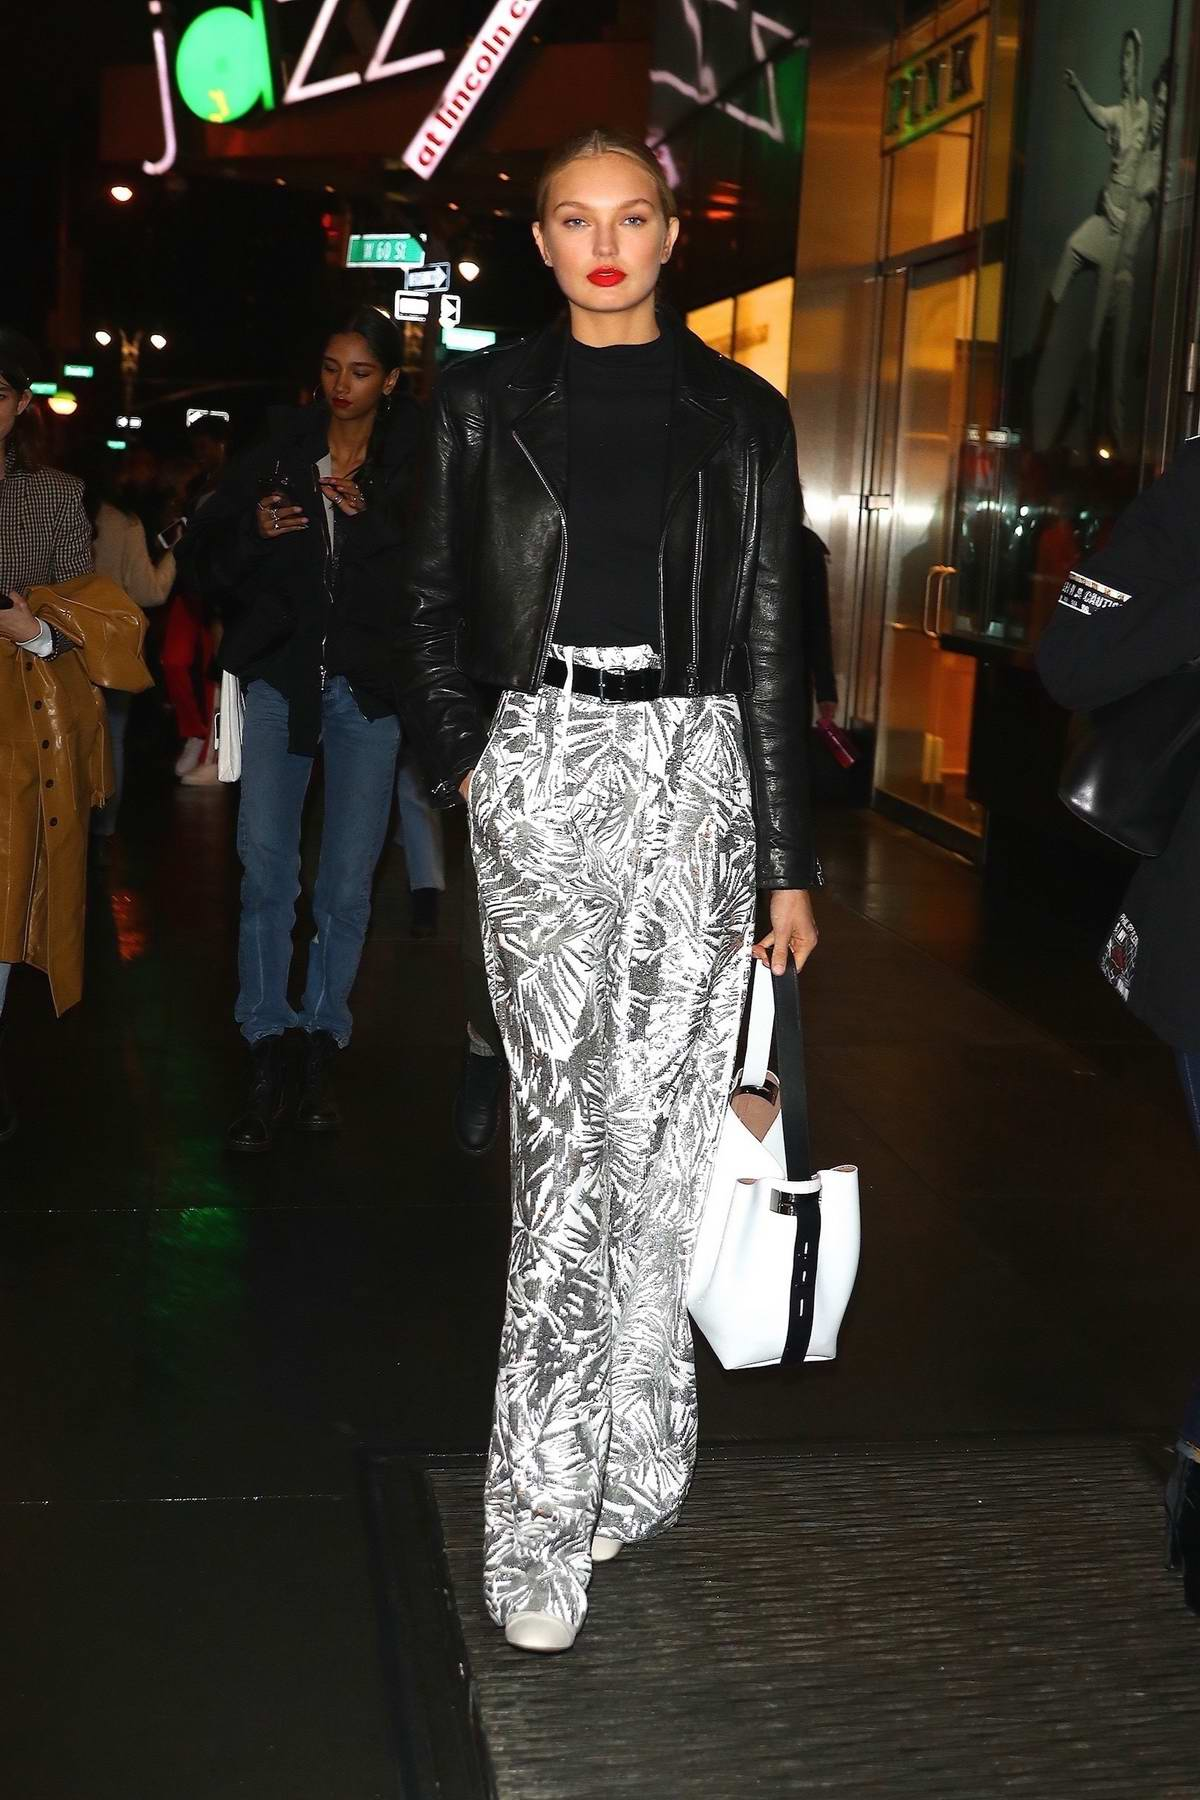 Romee Strijd wearing high waste print trousers and black leather jacket while out in New York City